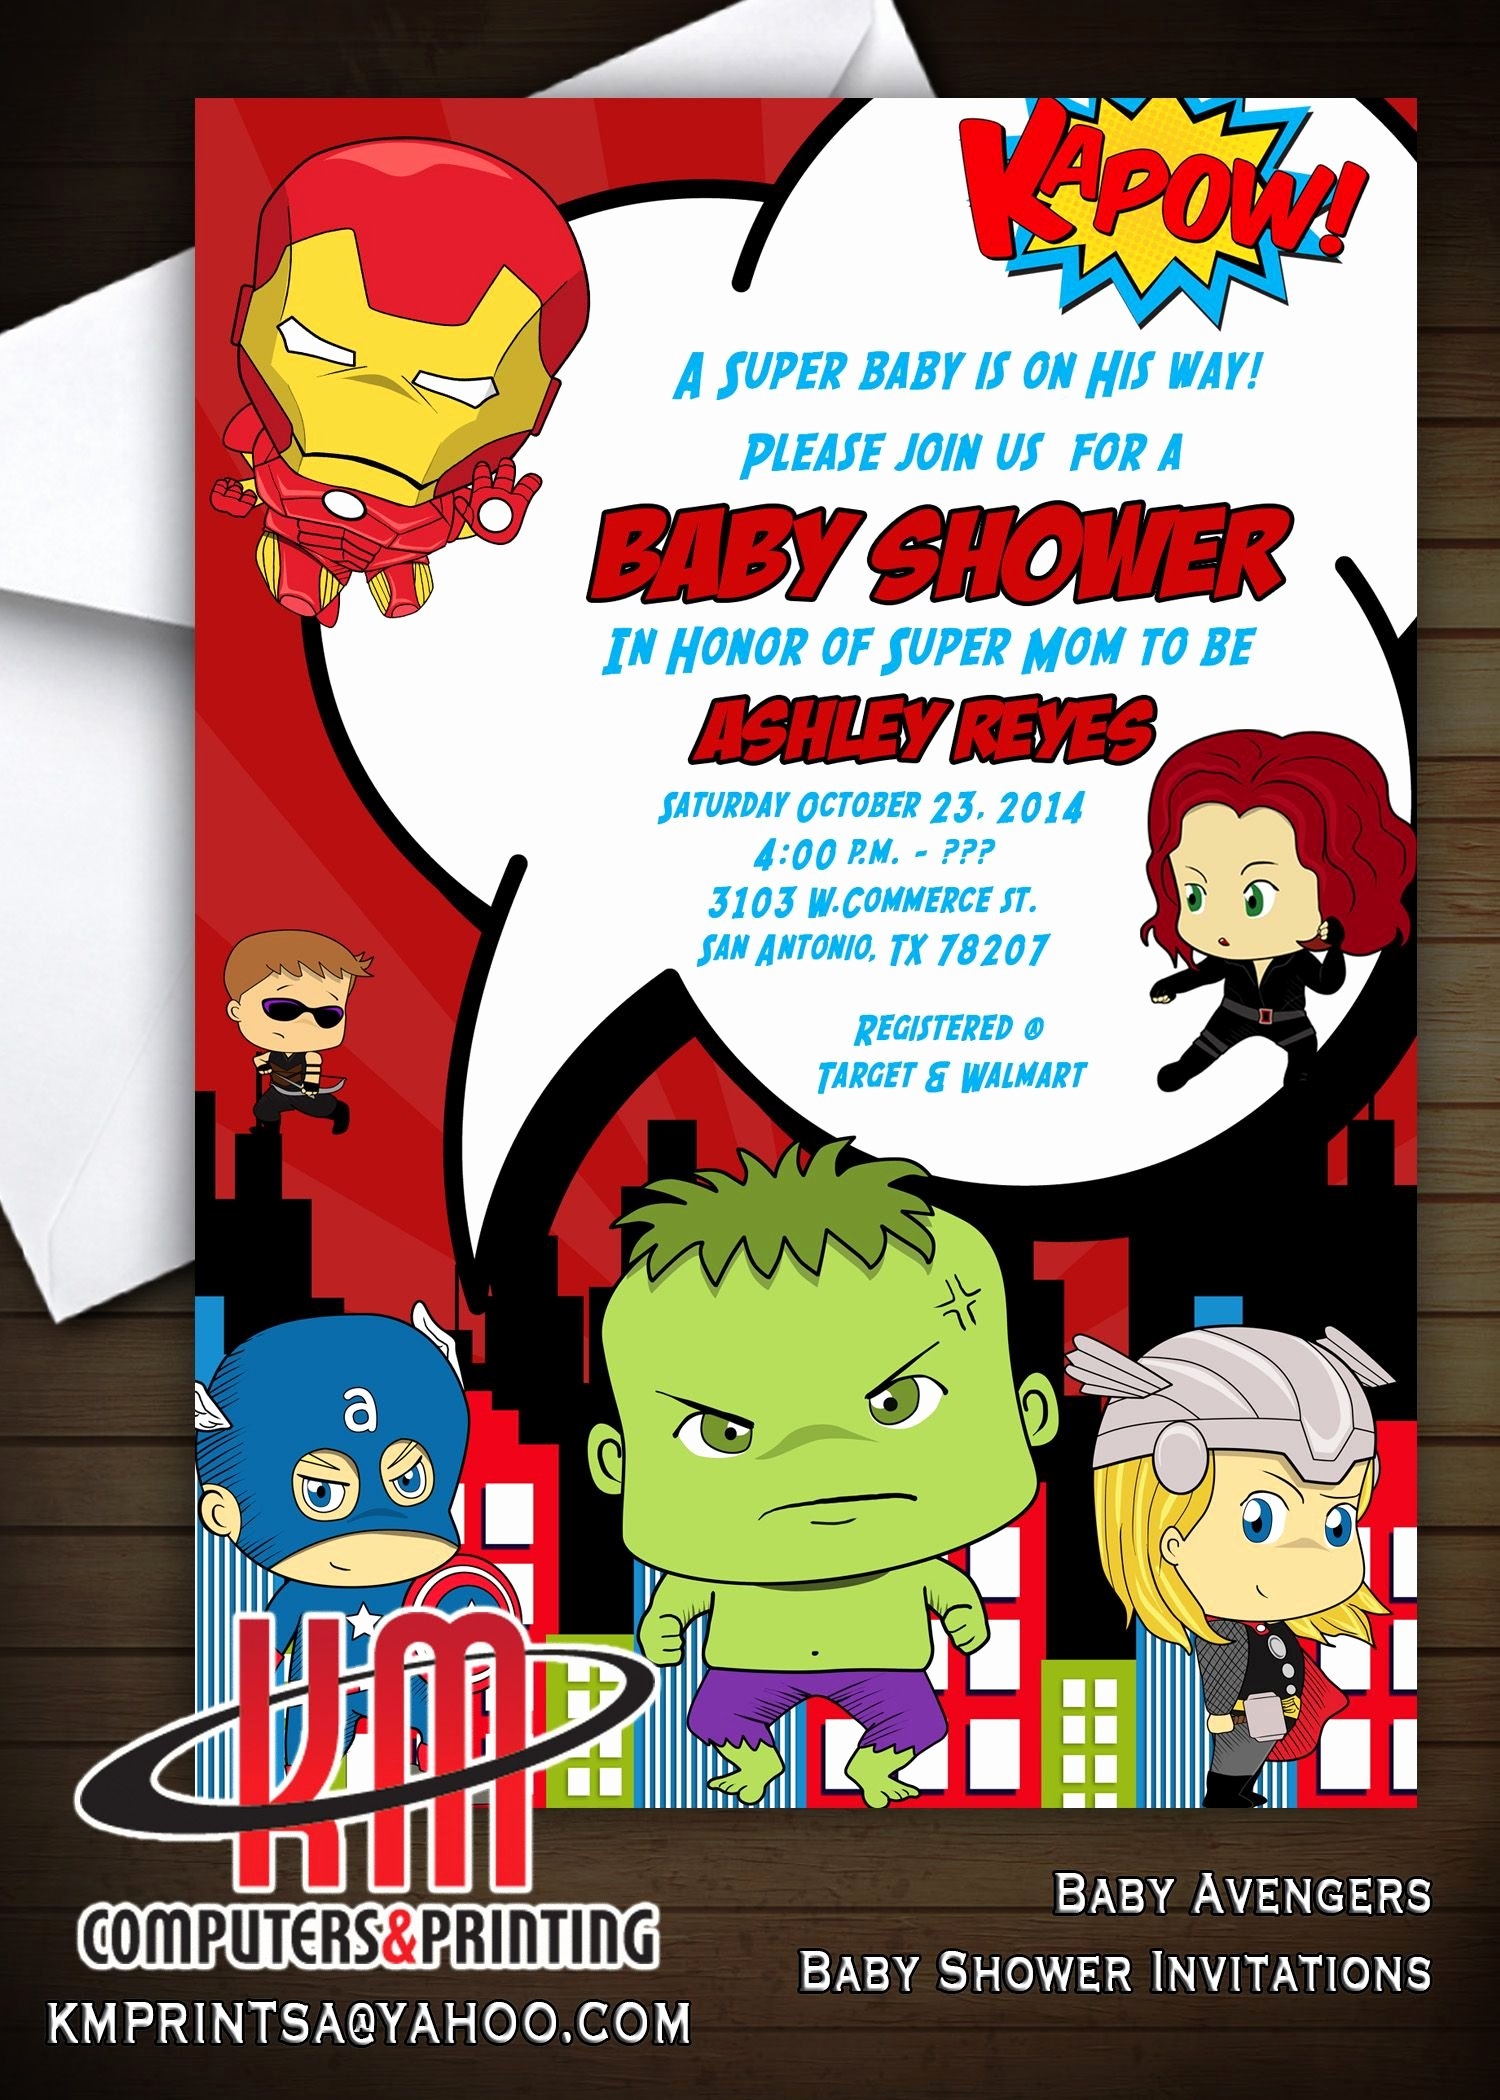 Avengers Birthday Invitations Custom New Baby Avengers Invitations Digital or Printed Available for